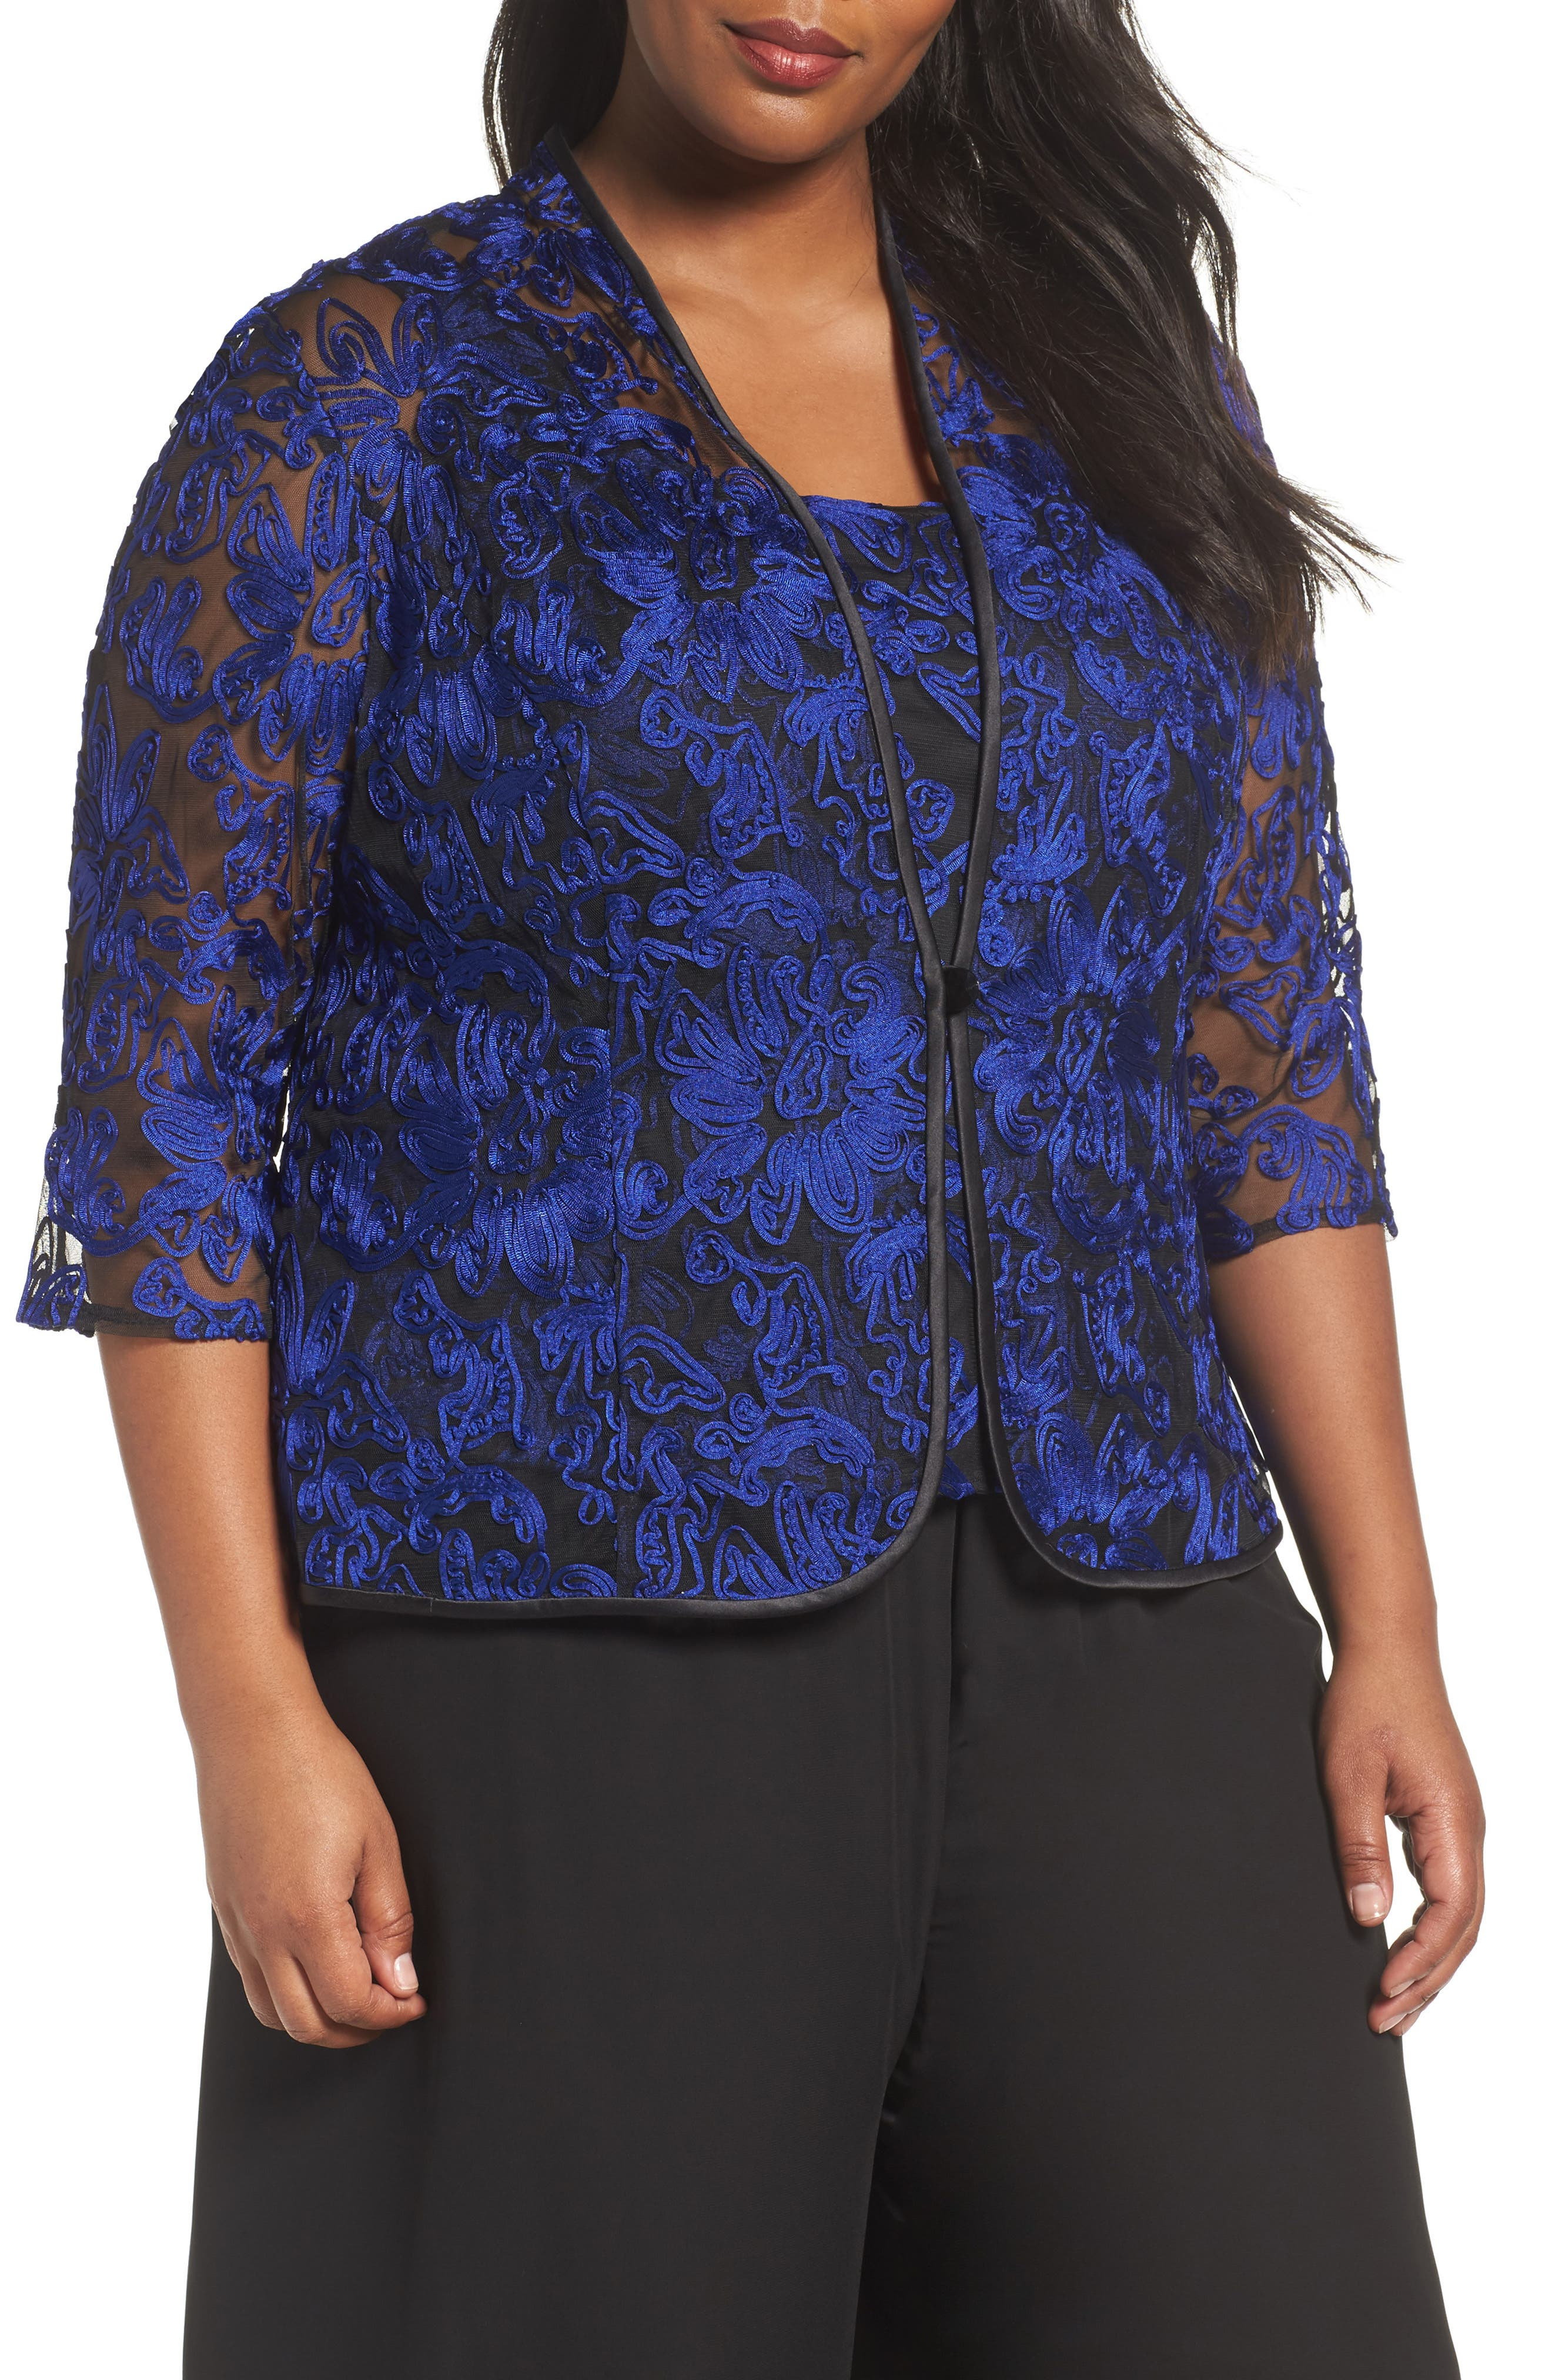 Alternate Image 1 Selected - Alex Evenings Embroidered Twinset (Plus Size)